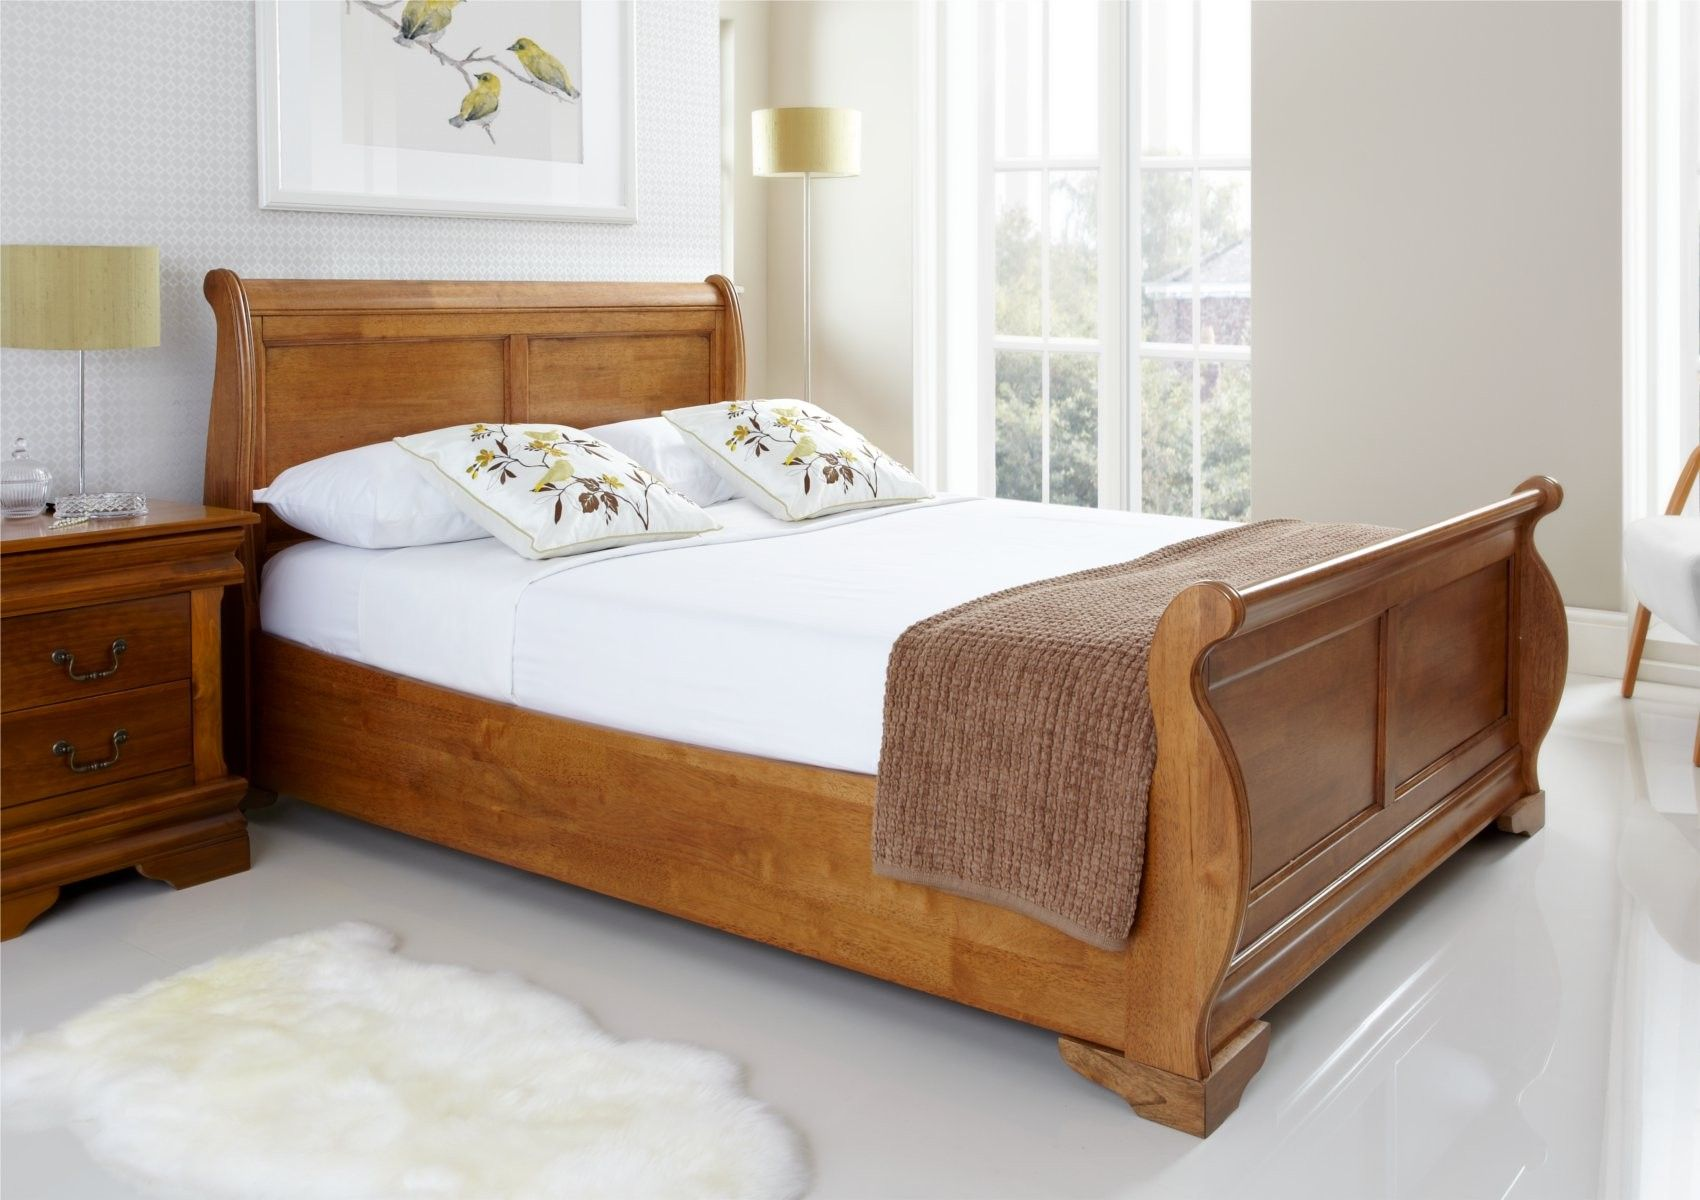 louie wooden sleigh bed oak finish bedroom pinterest wooden sleigh bed. Black Bedroom Furniture Sets. Home Design Ideas